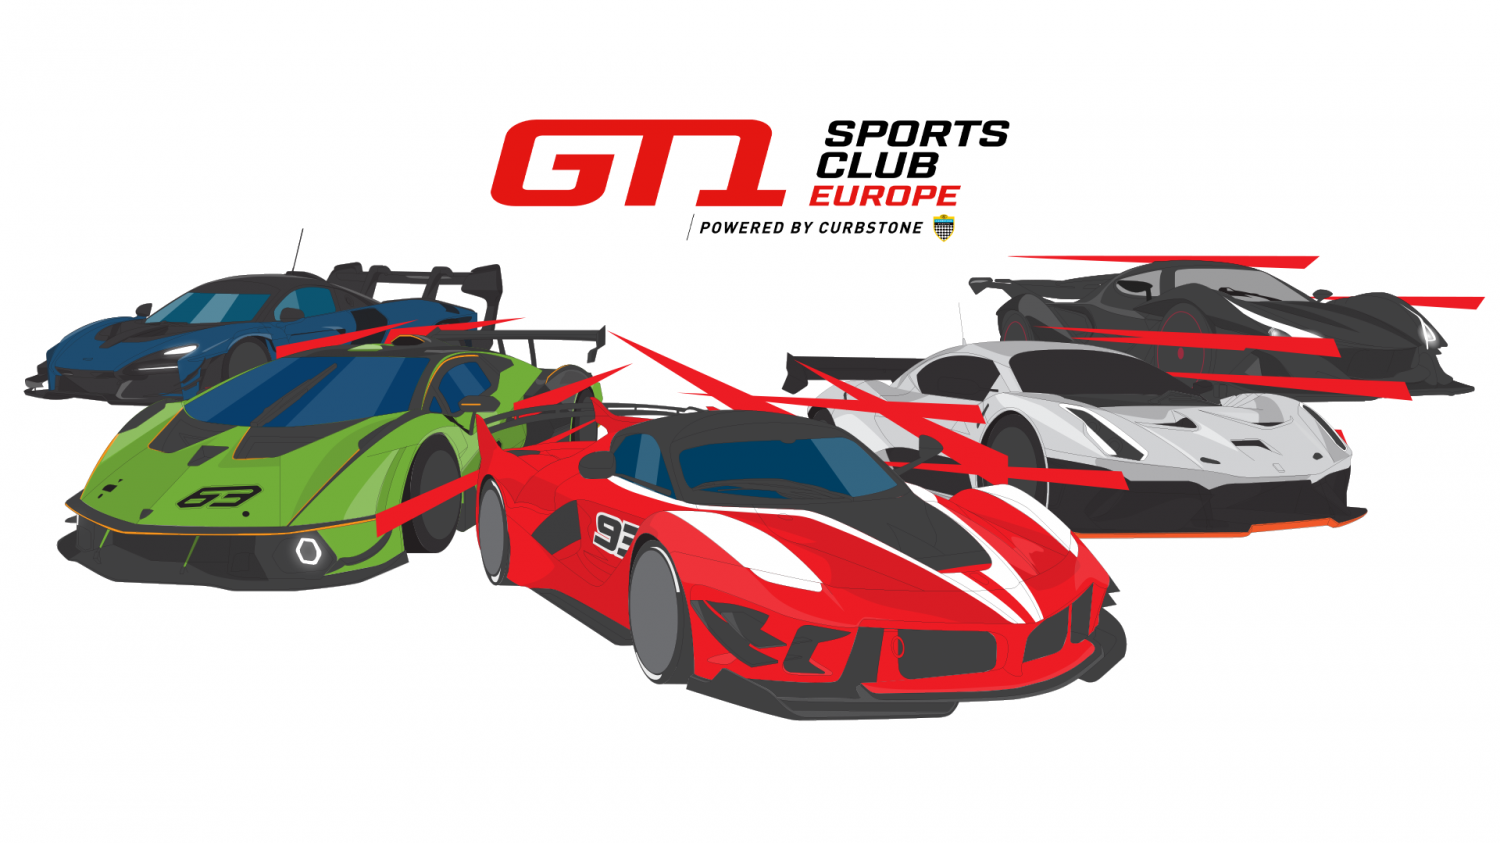 SRO Motorsports Group reveals plans for inaugural GT1 Sports Club Powered by Curbstone Events at Circuit de Barcelona-Catalunya